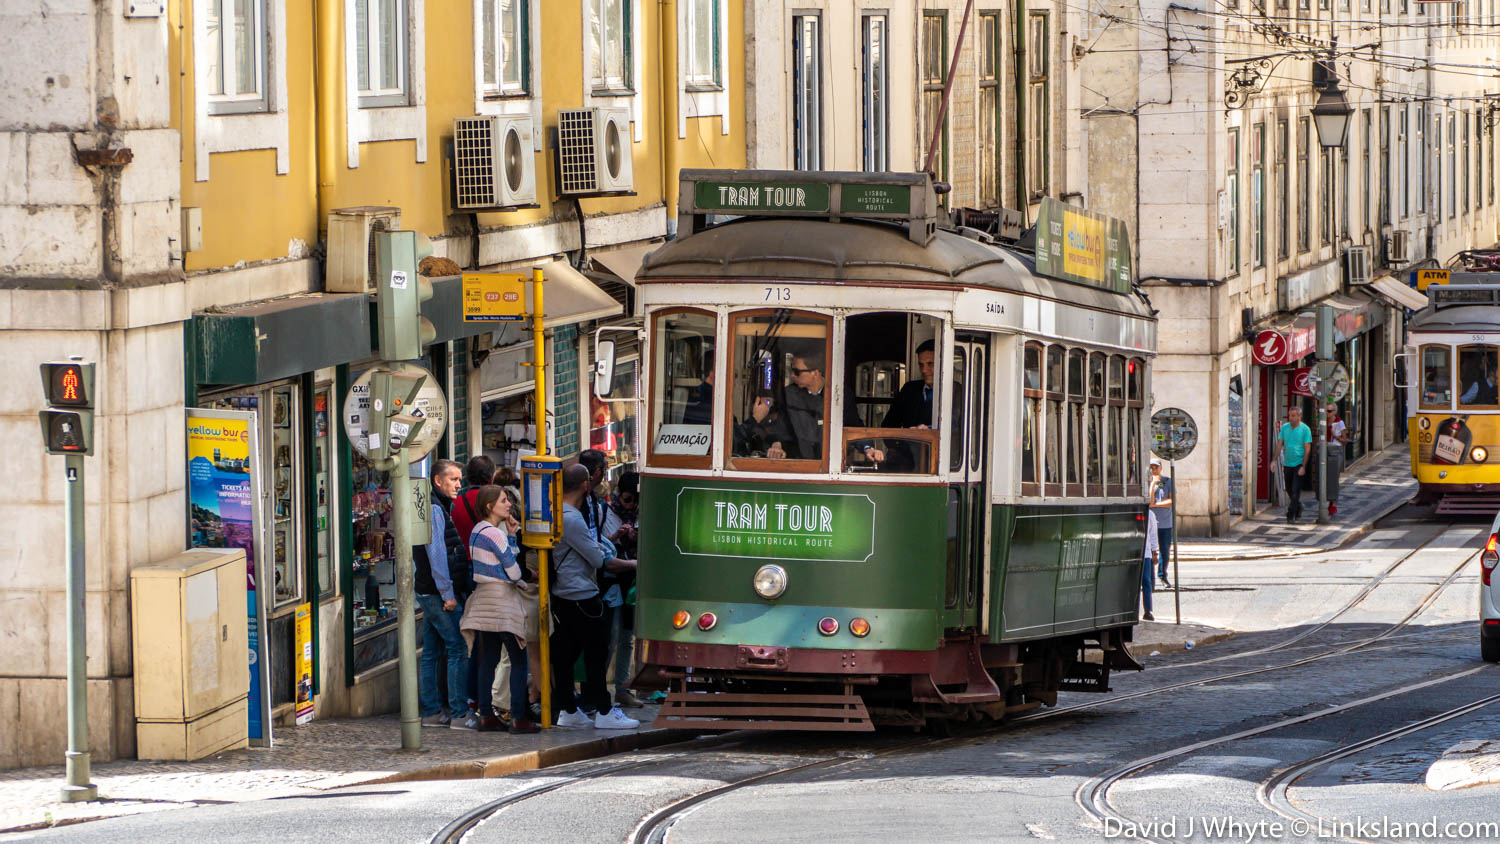 Enjoy a private tram tour of the old parts of Lisbon accompanied by a wine-tasting